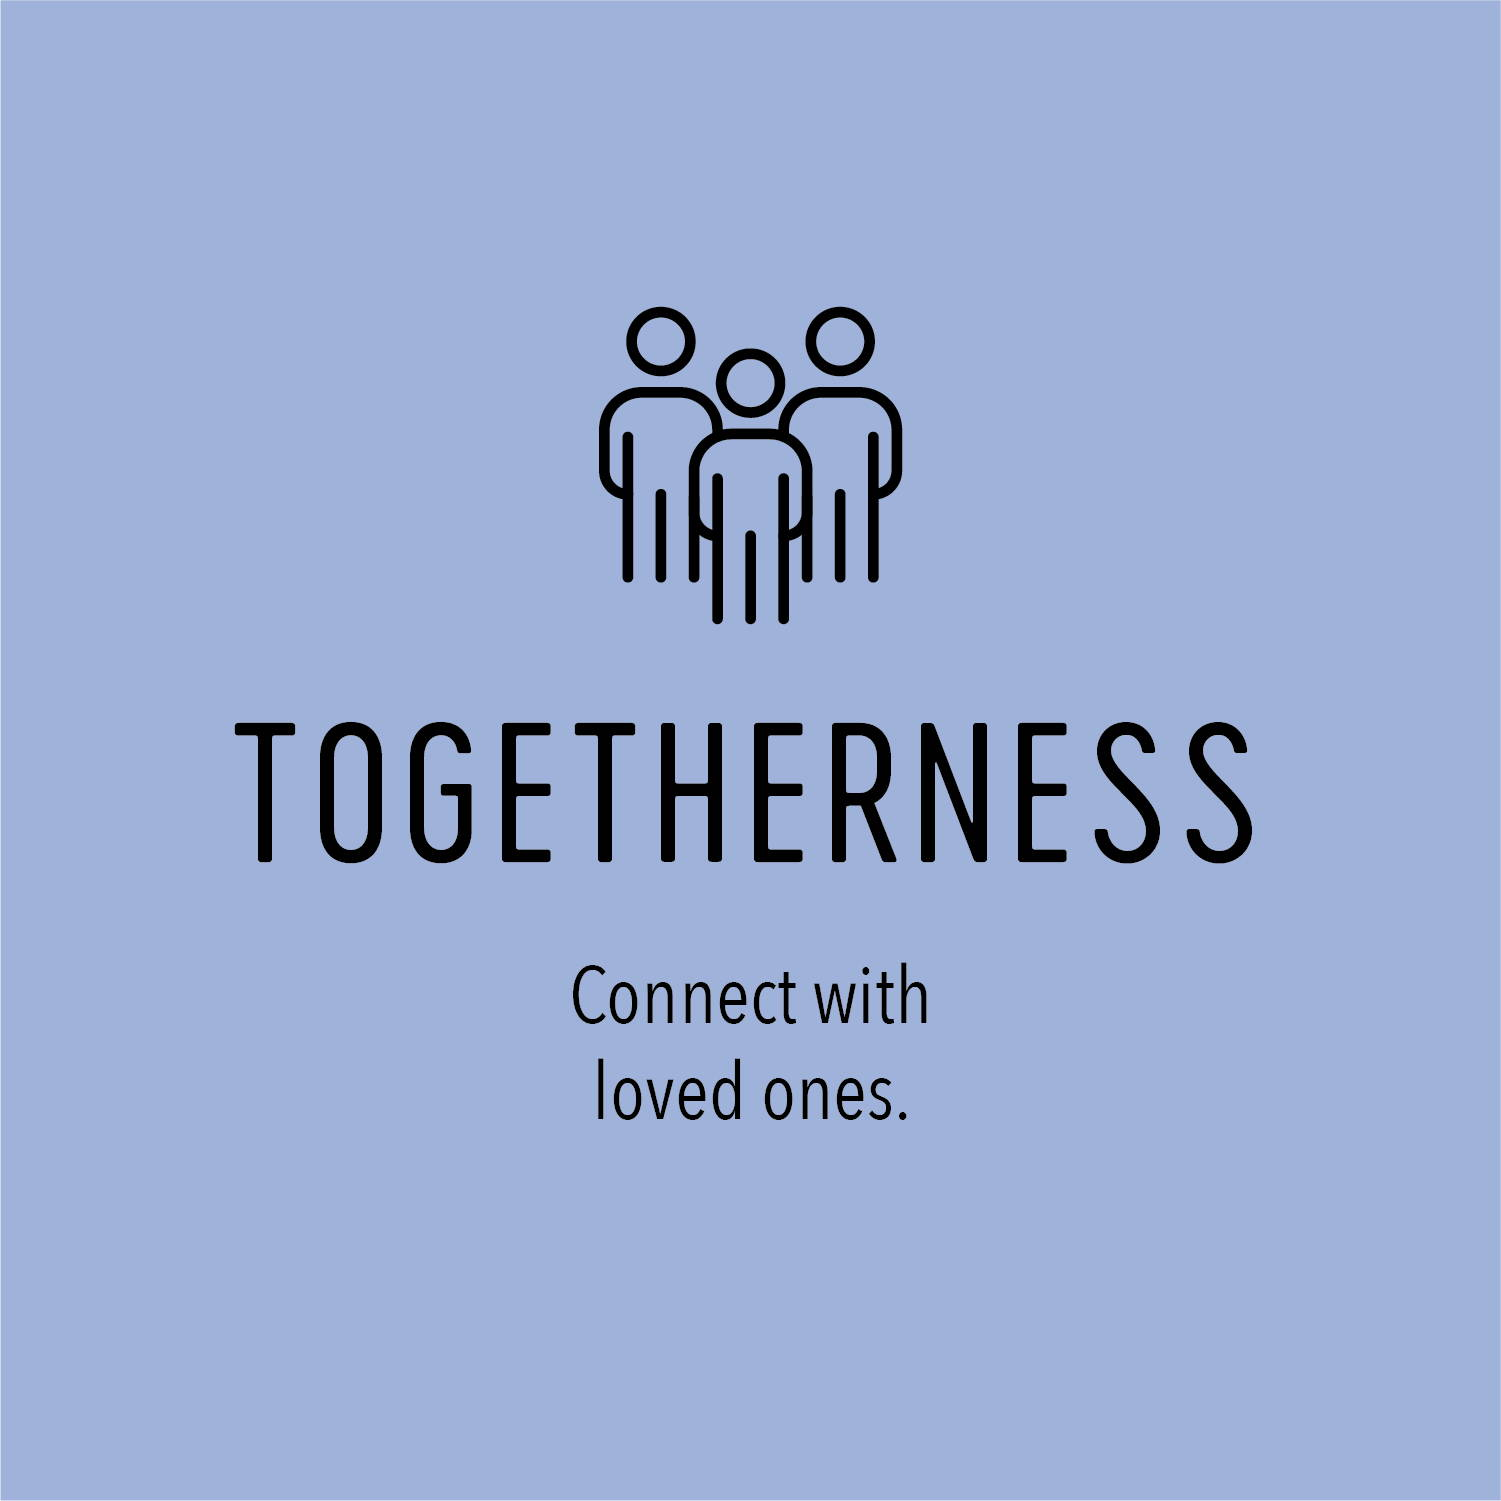 Hygge - Togetherness